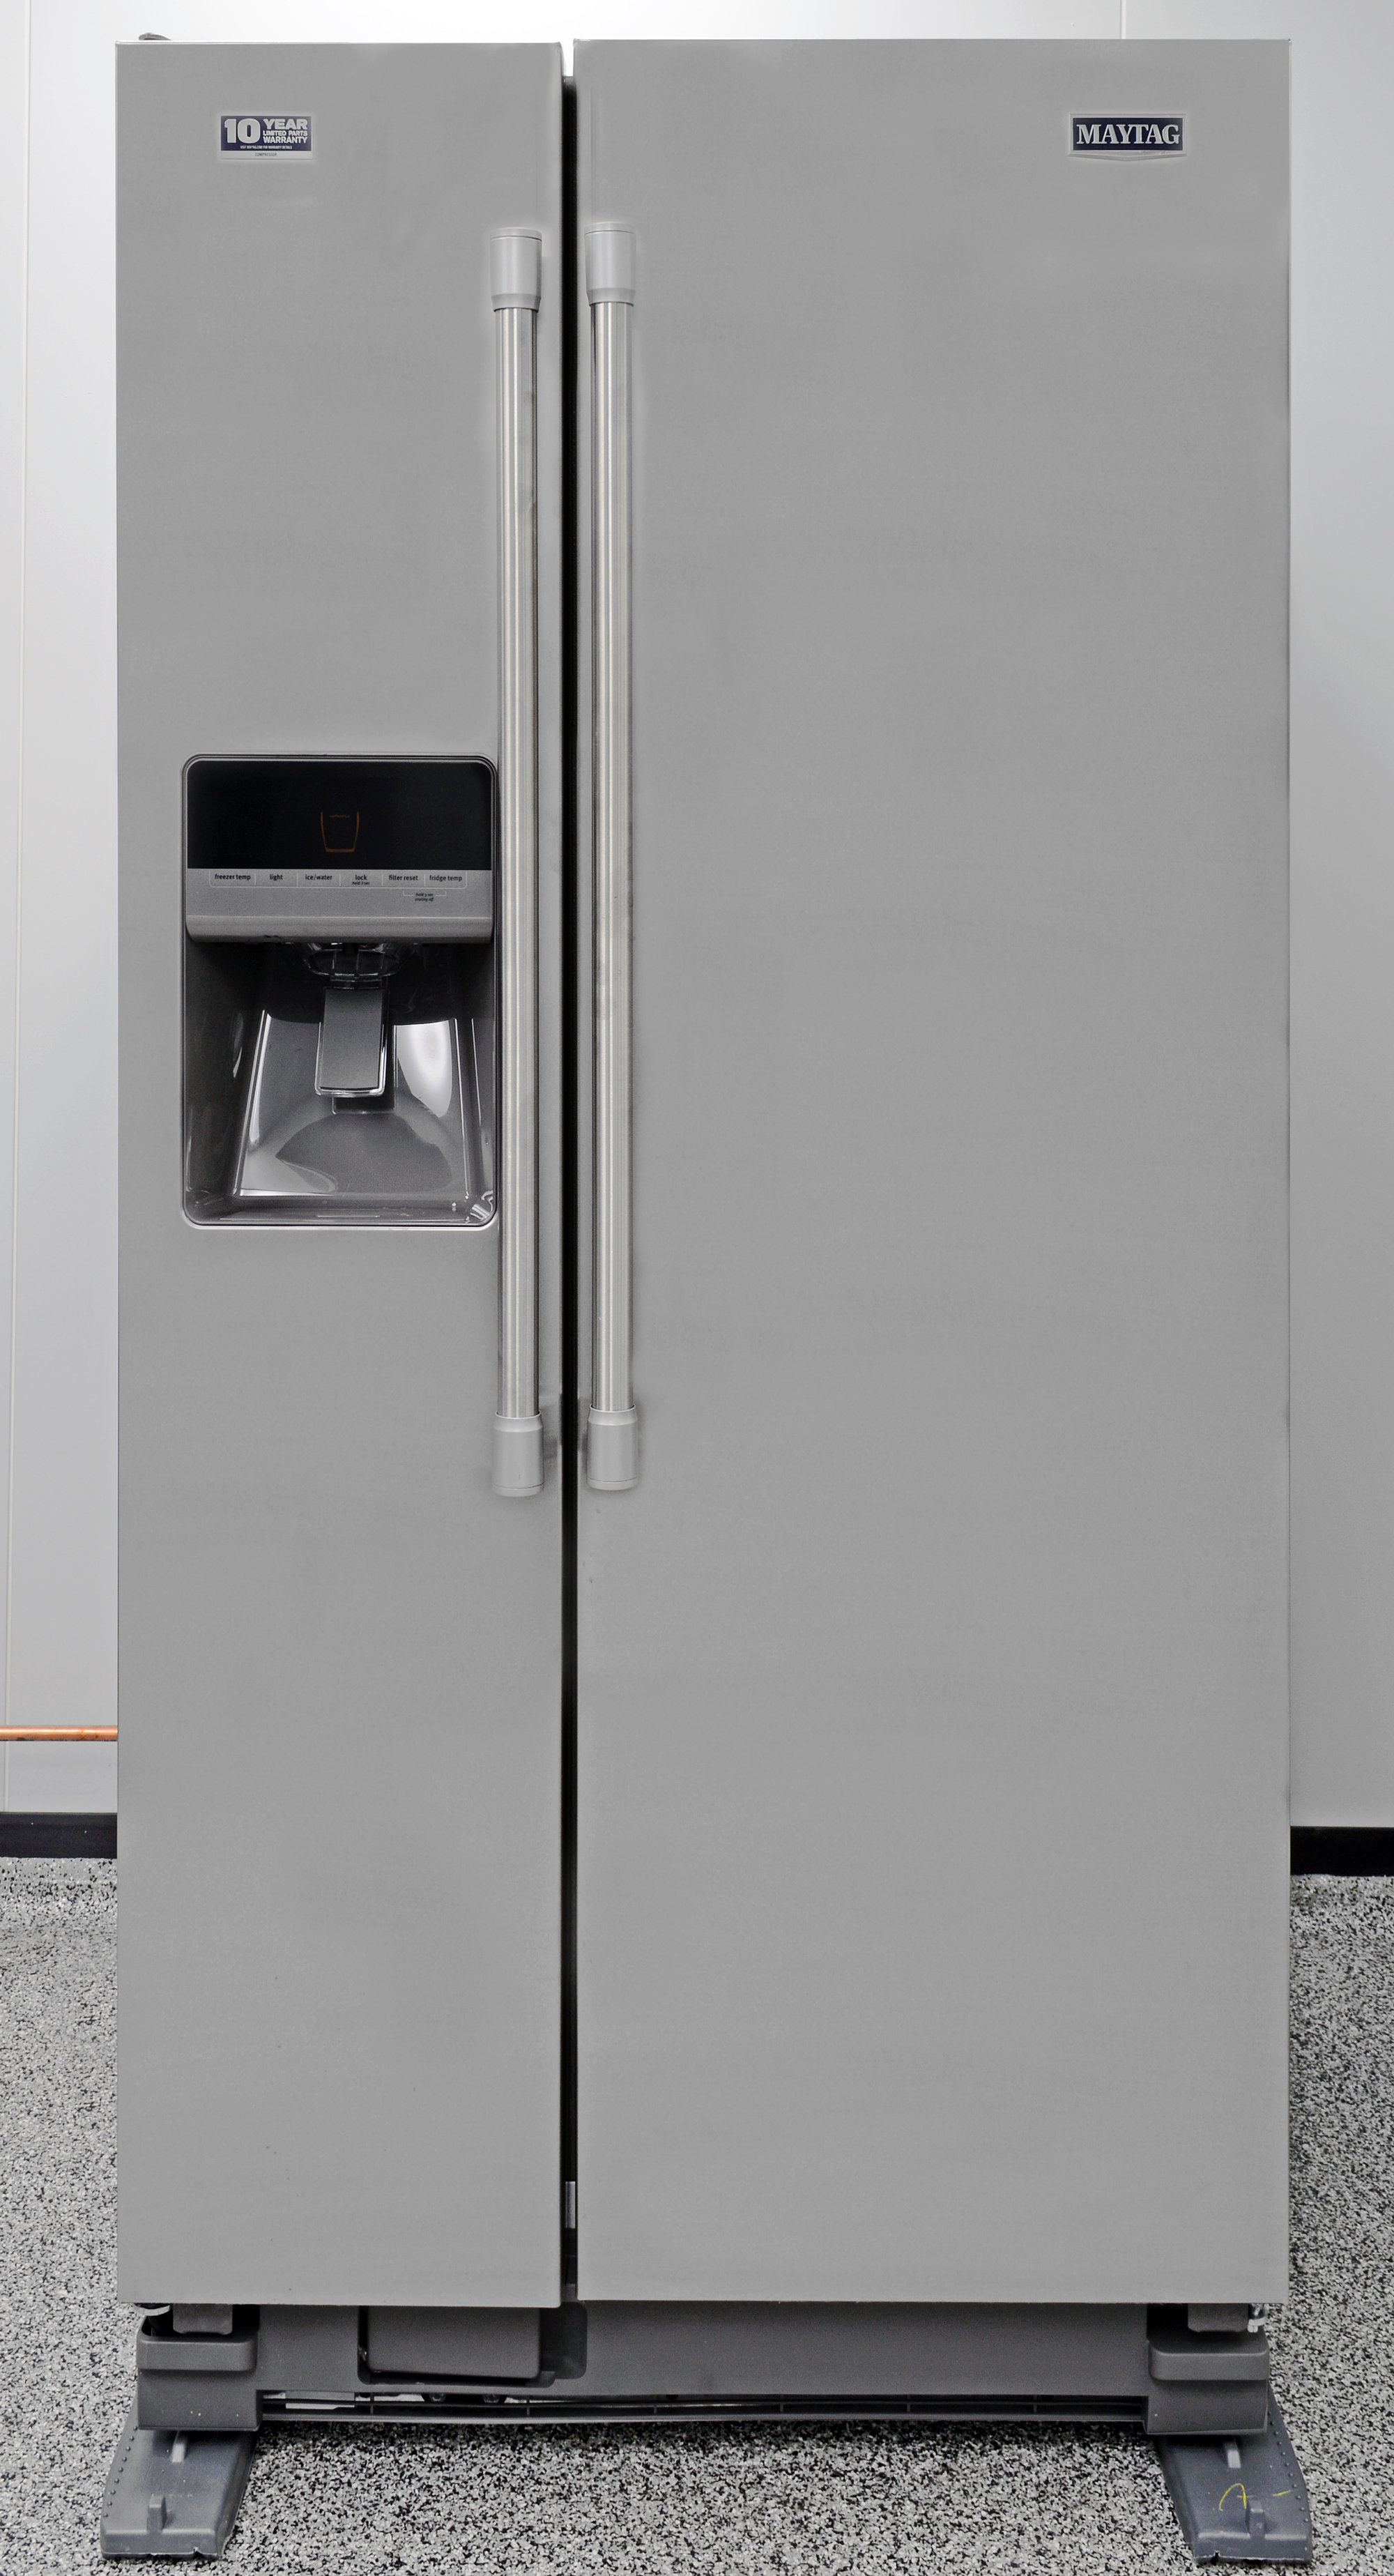 The Maytag MSF21D4MDM side-by-side is the same height as a 21-cubic-foot top freezer.